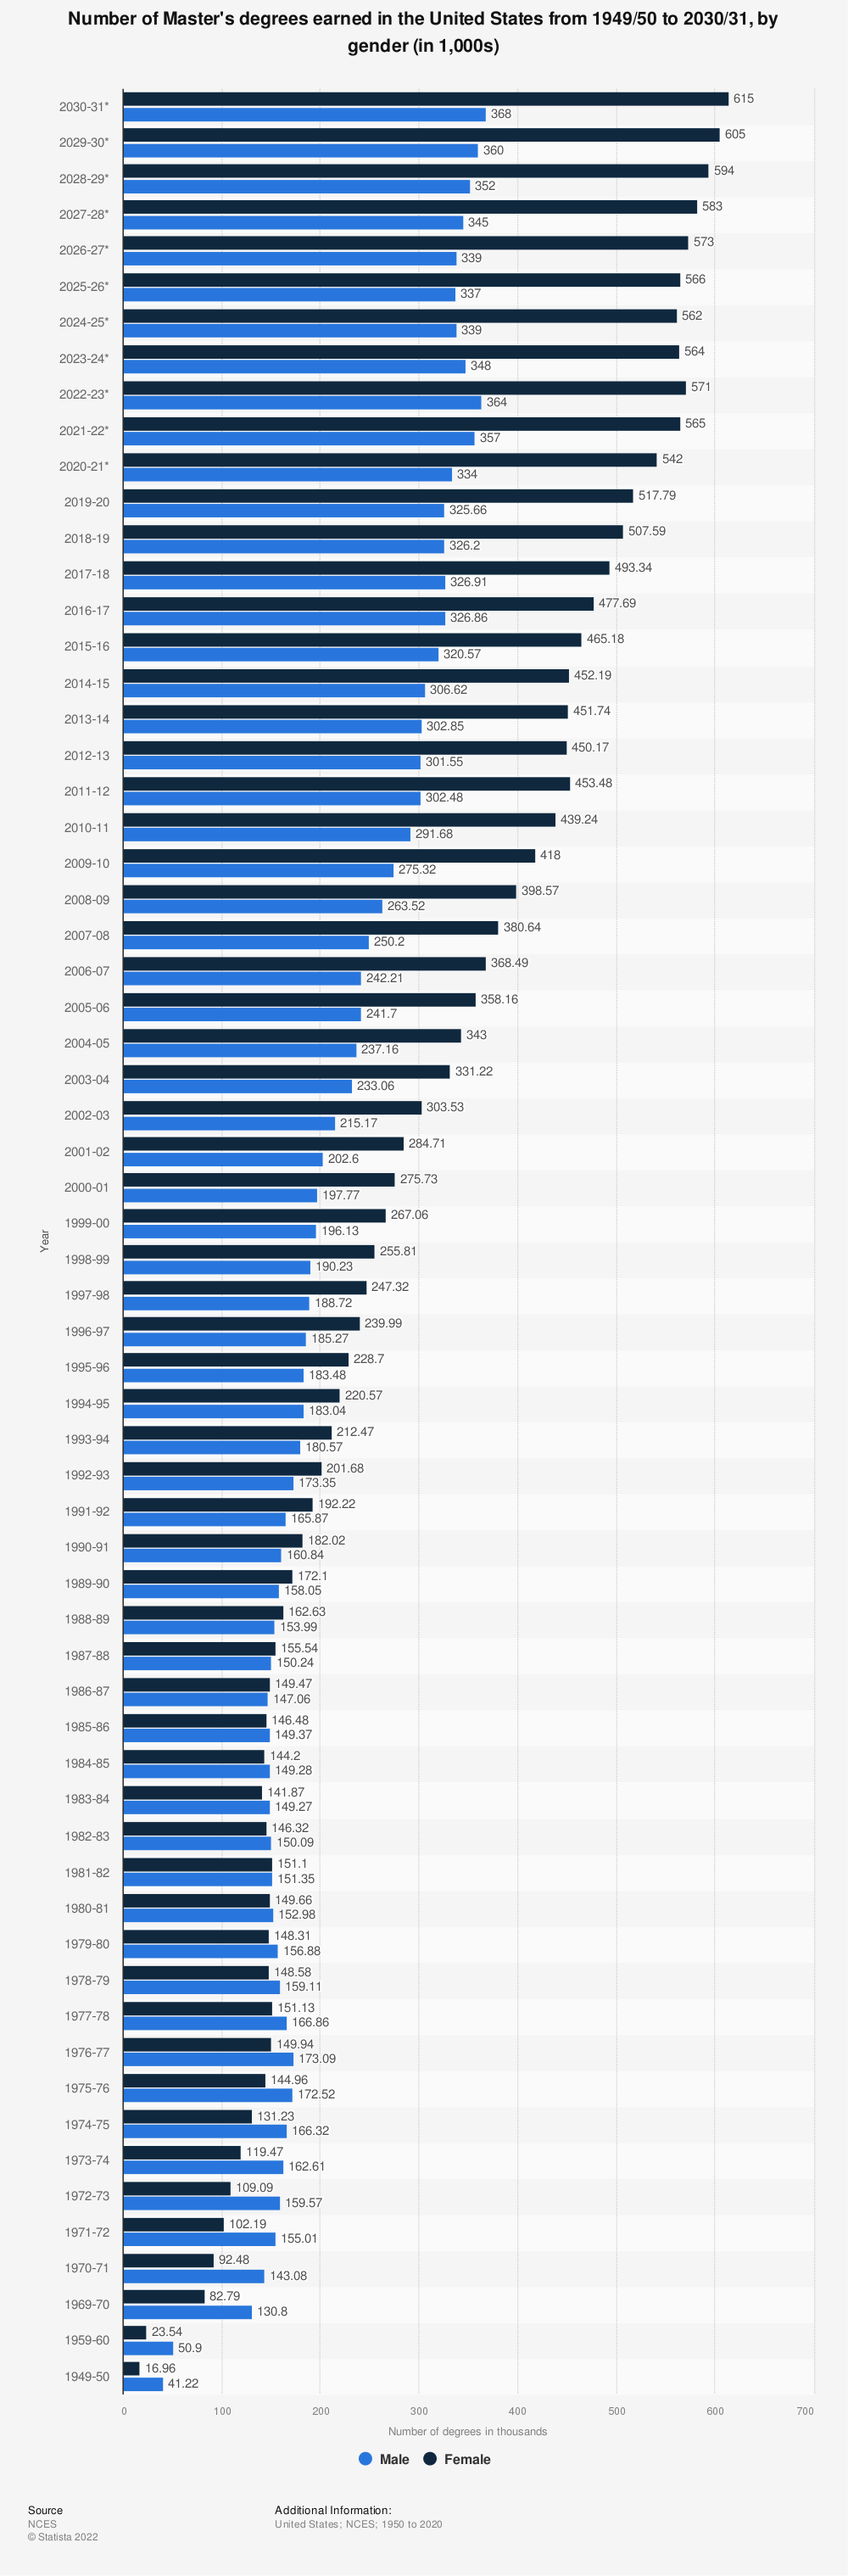 Statistic: Number of Master's degrees earned in the United States from 1949/50 to 2029/30, by gender (in 1,000s) | Statista